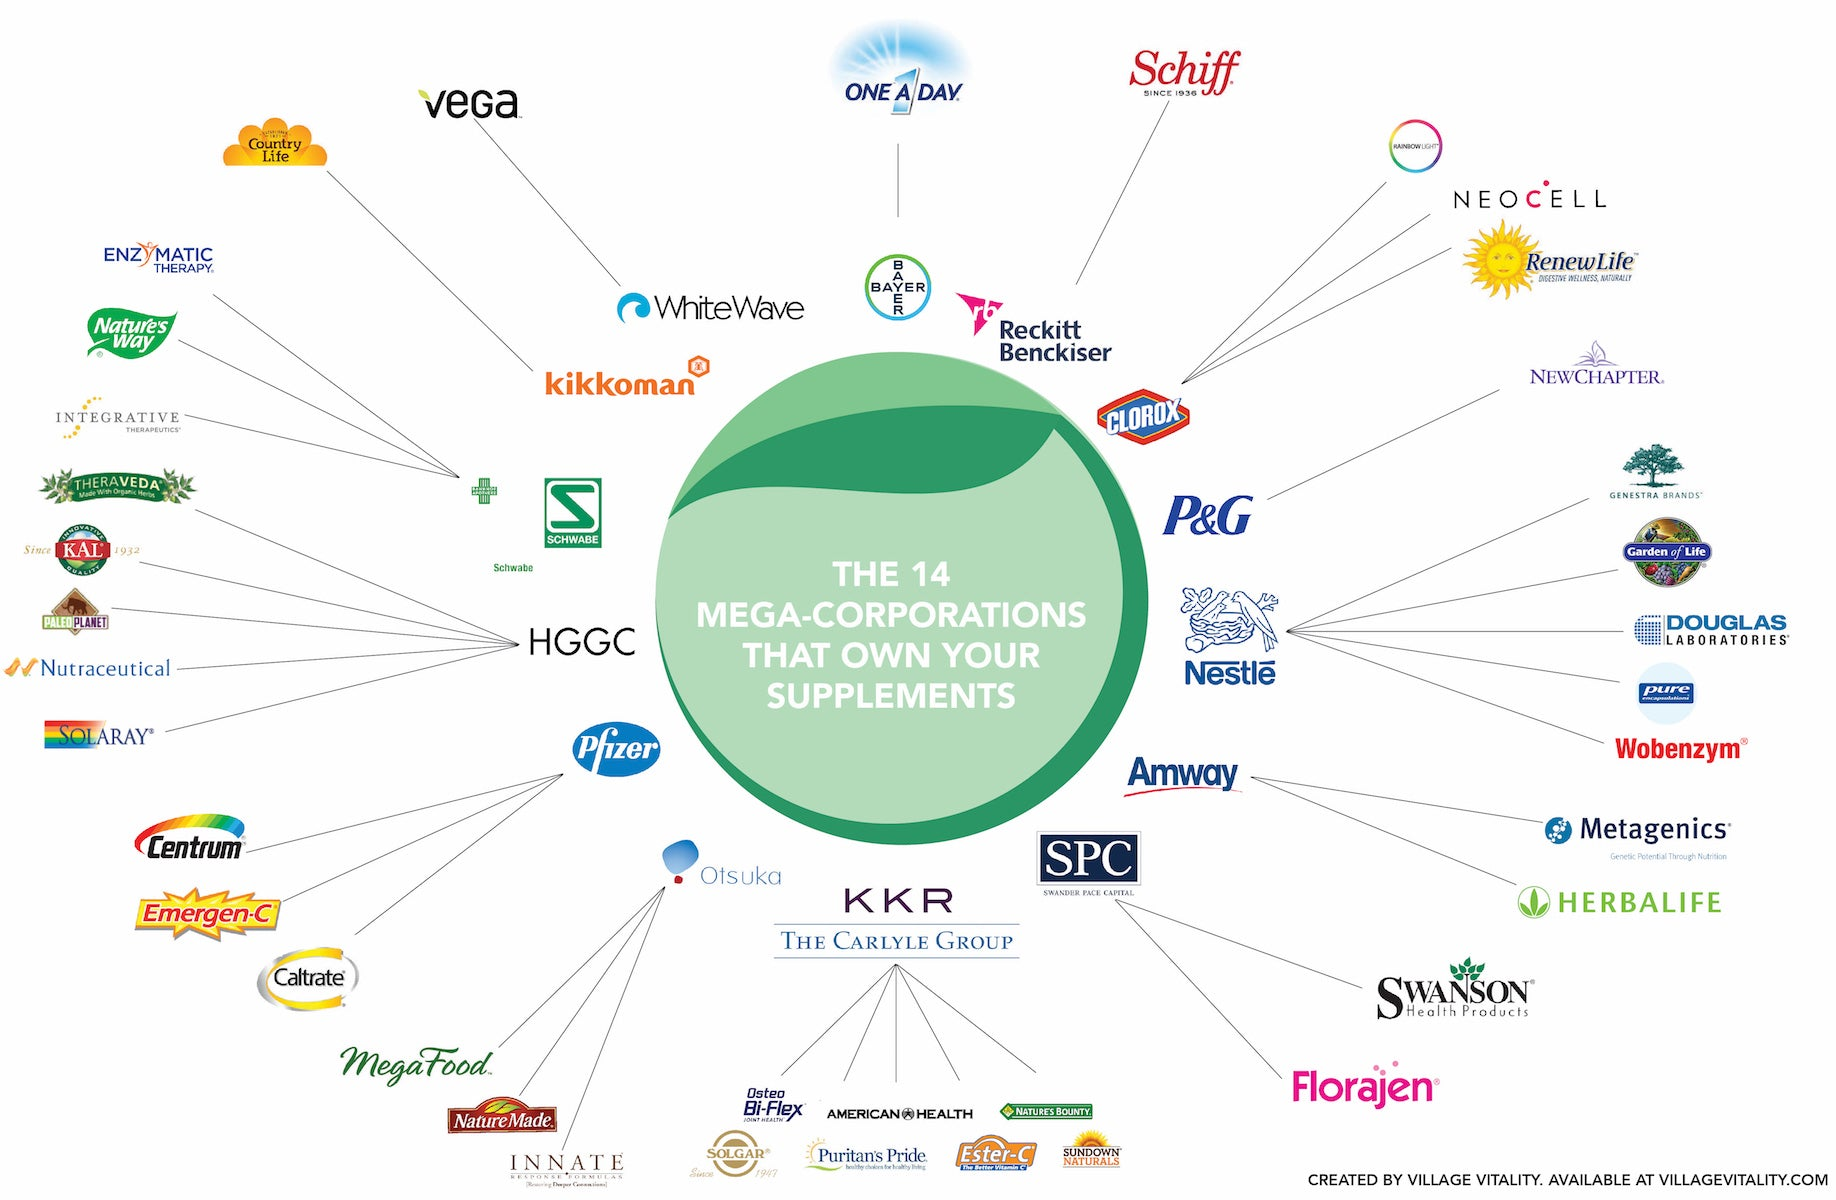 The 14 mega-corporations that own your supplement brand